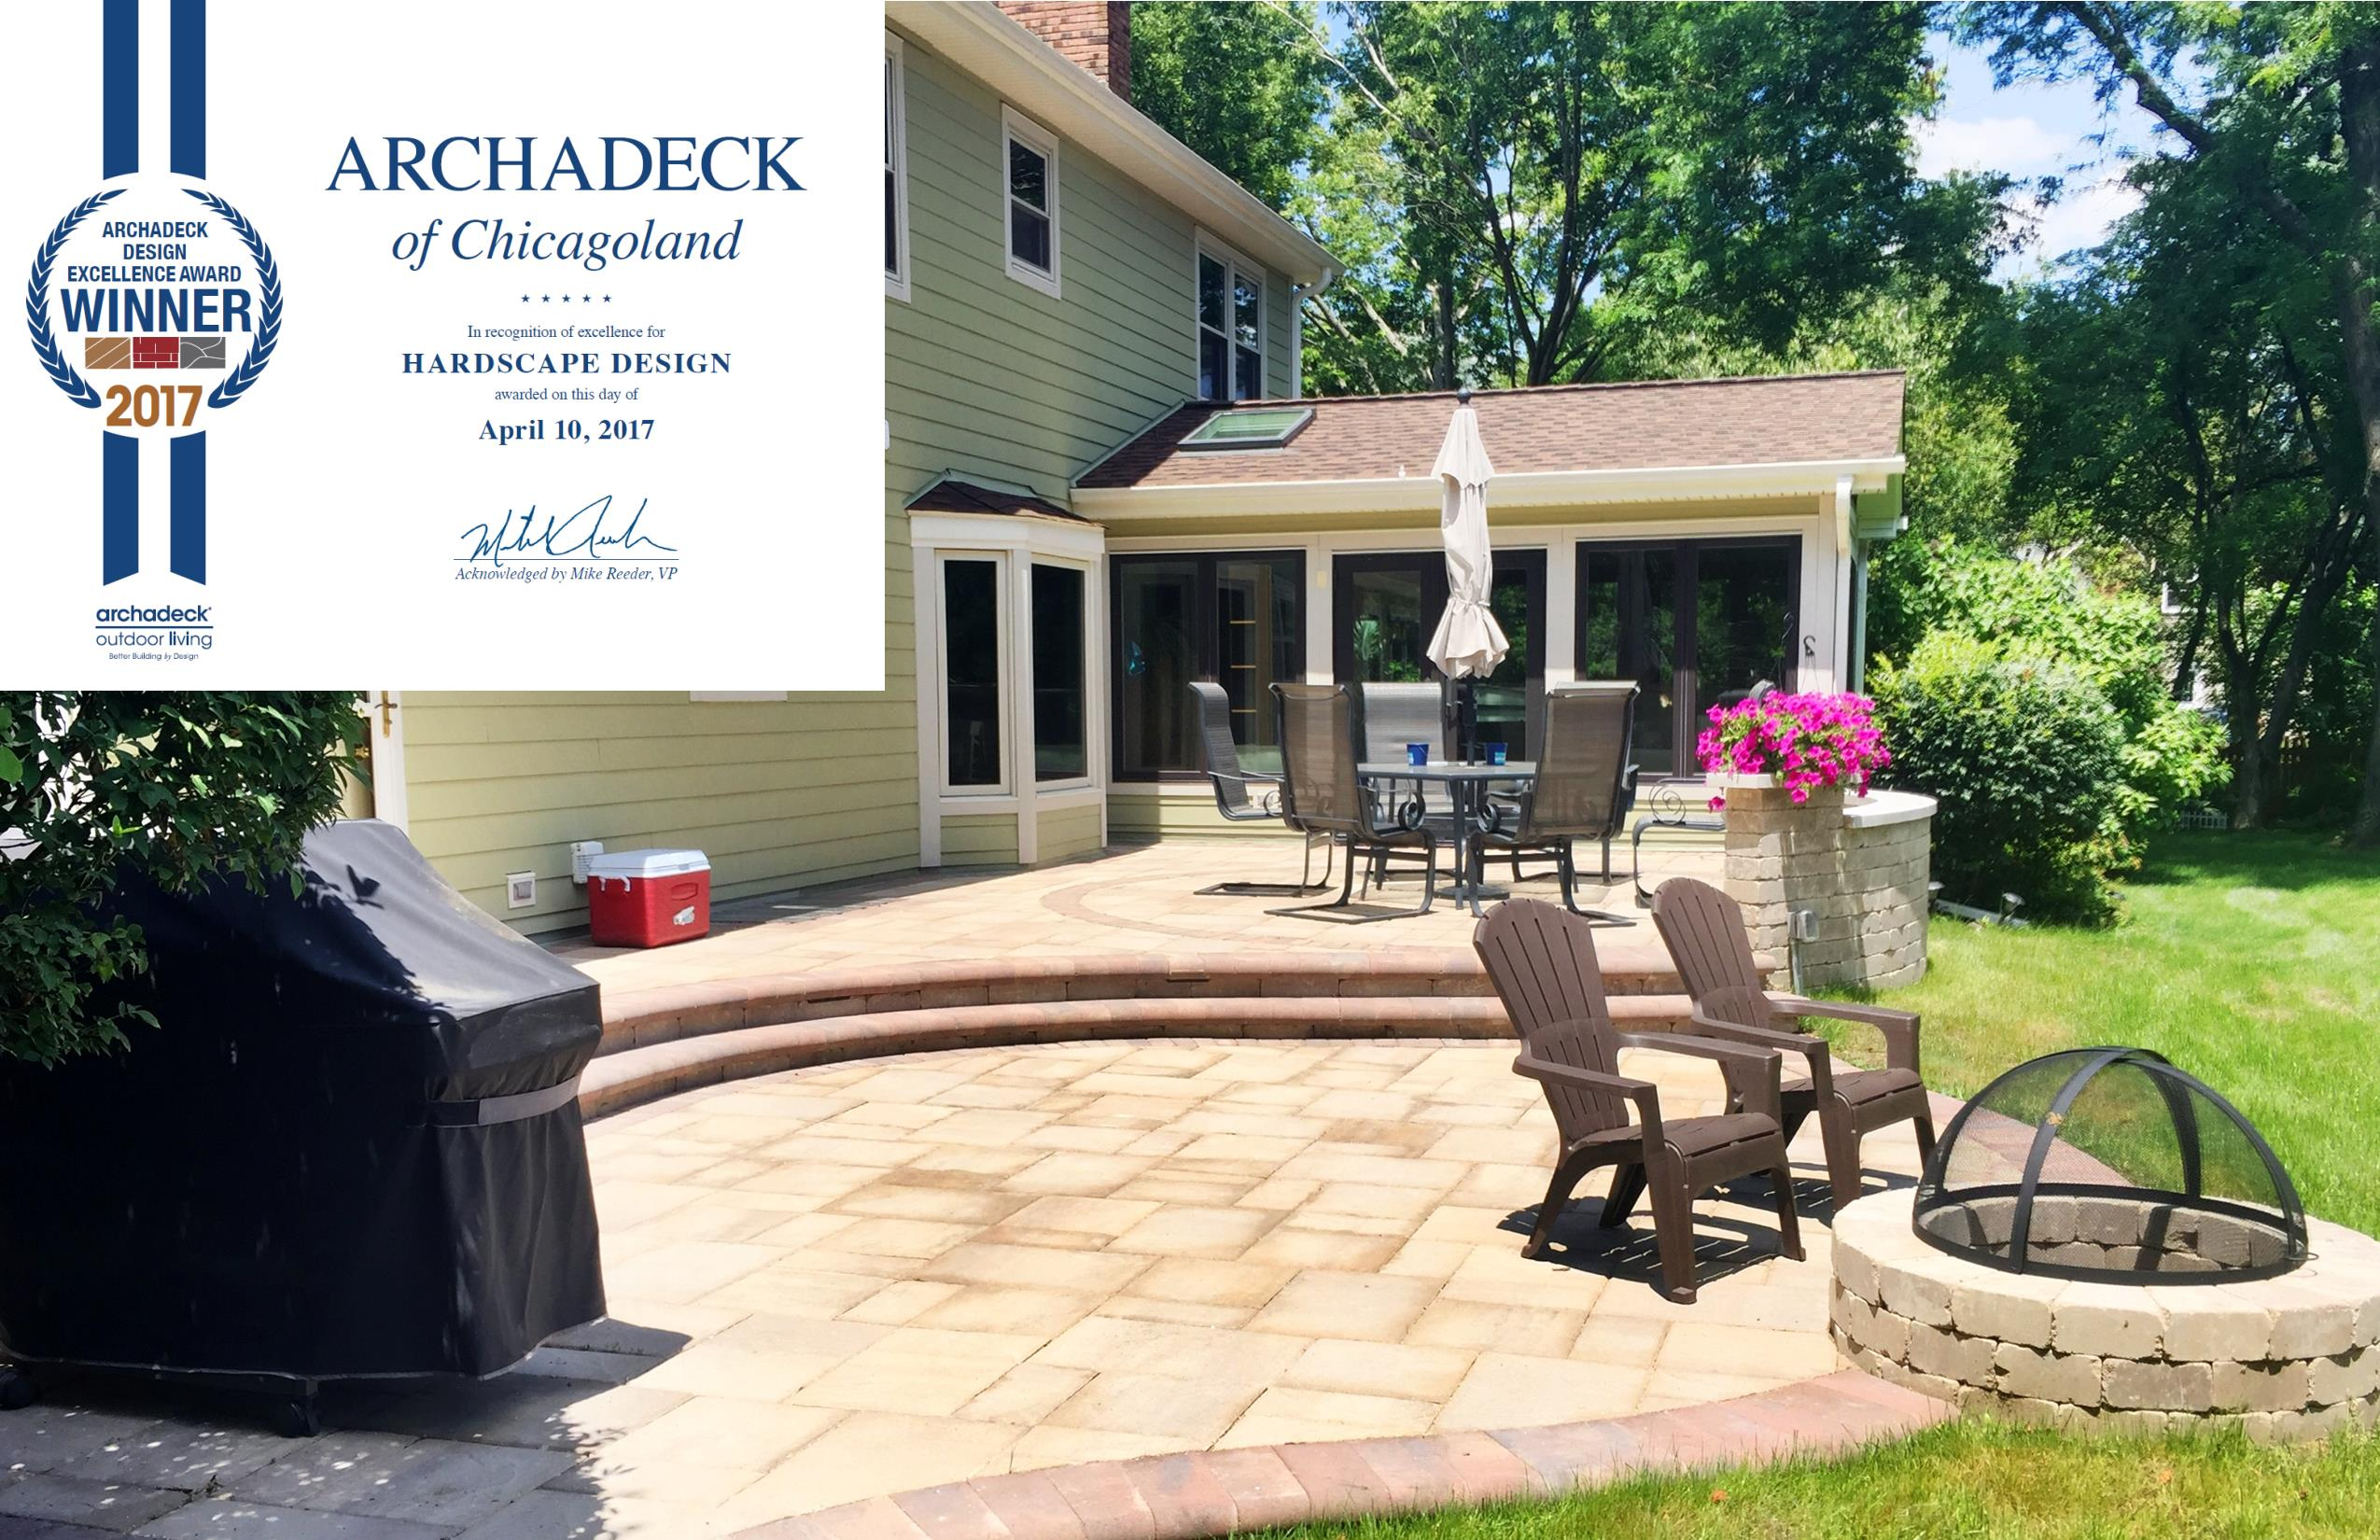 This Award Winning Project Is A Spacious, Multi Level Belgard Paver Patio,  Designed By Archadeck Design Consultant, Maggie Lawlor.